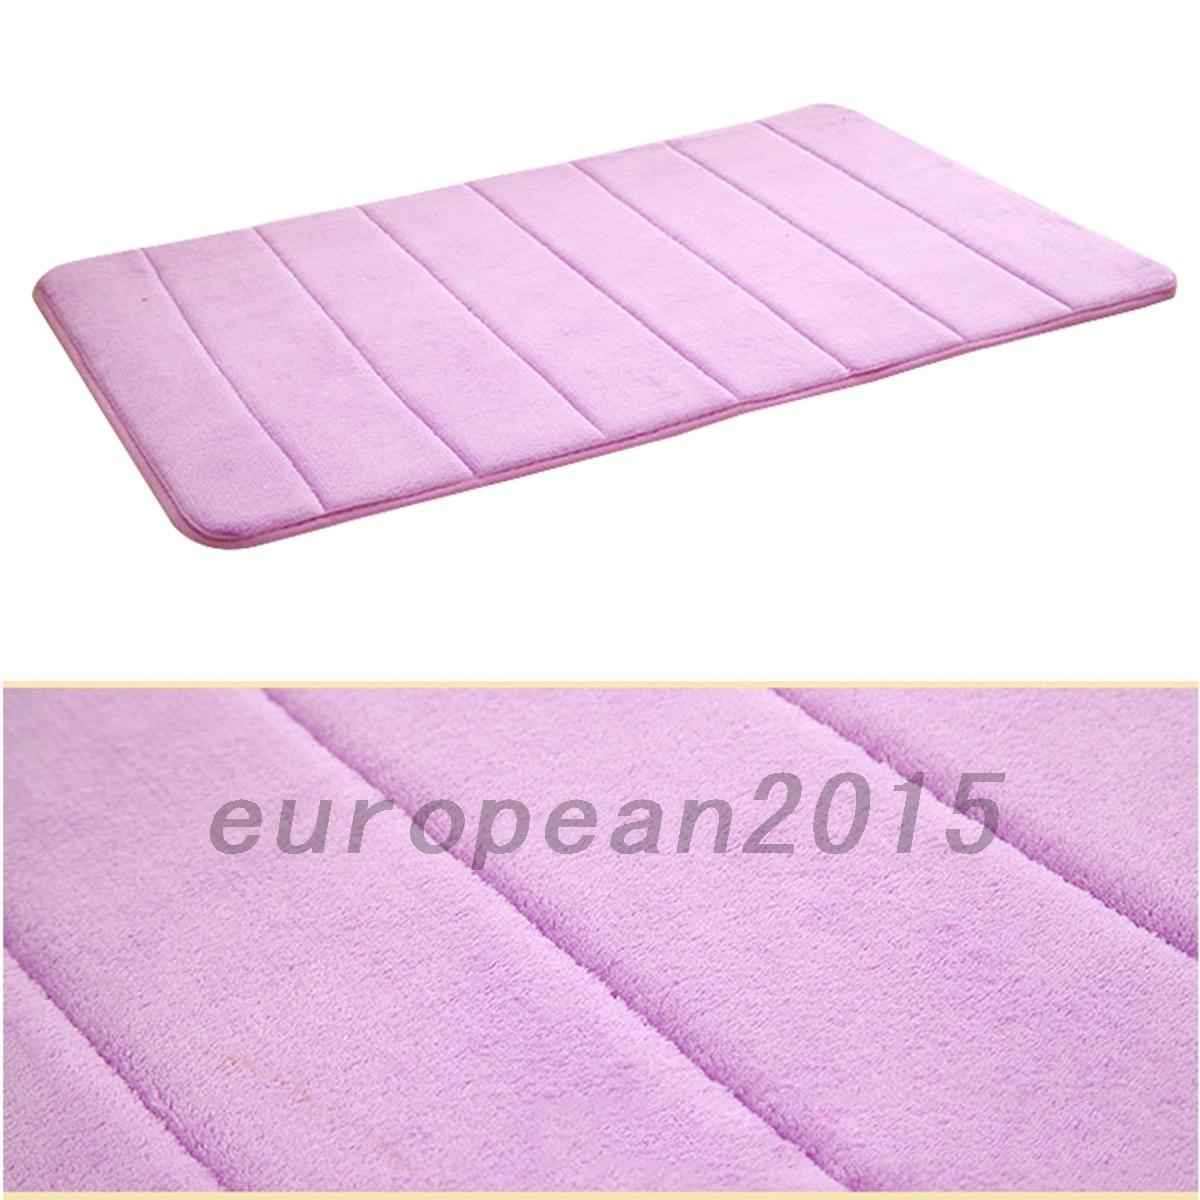 High Quality Soft Memory Foam Bath Bathroom Floor Shower